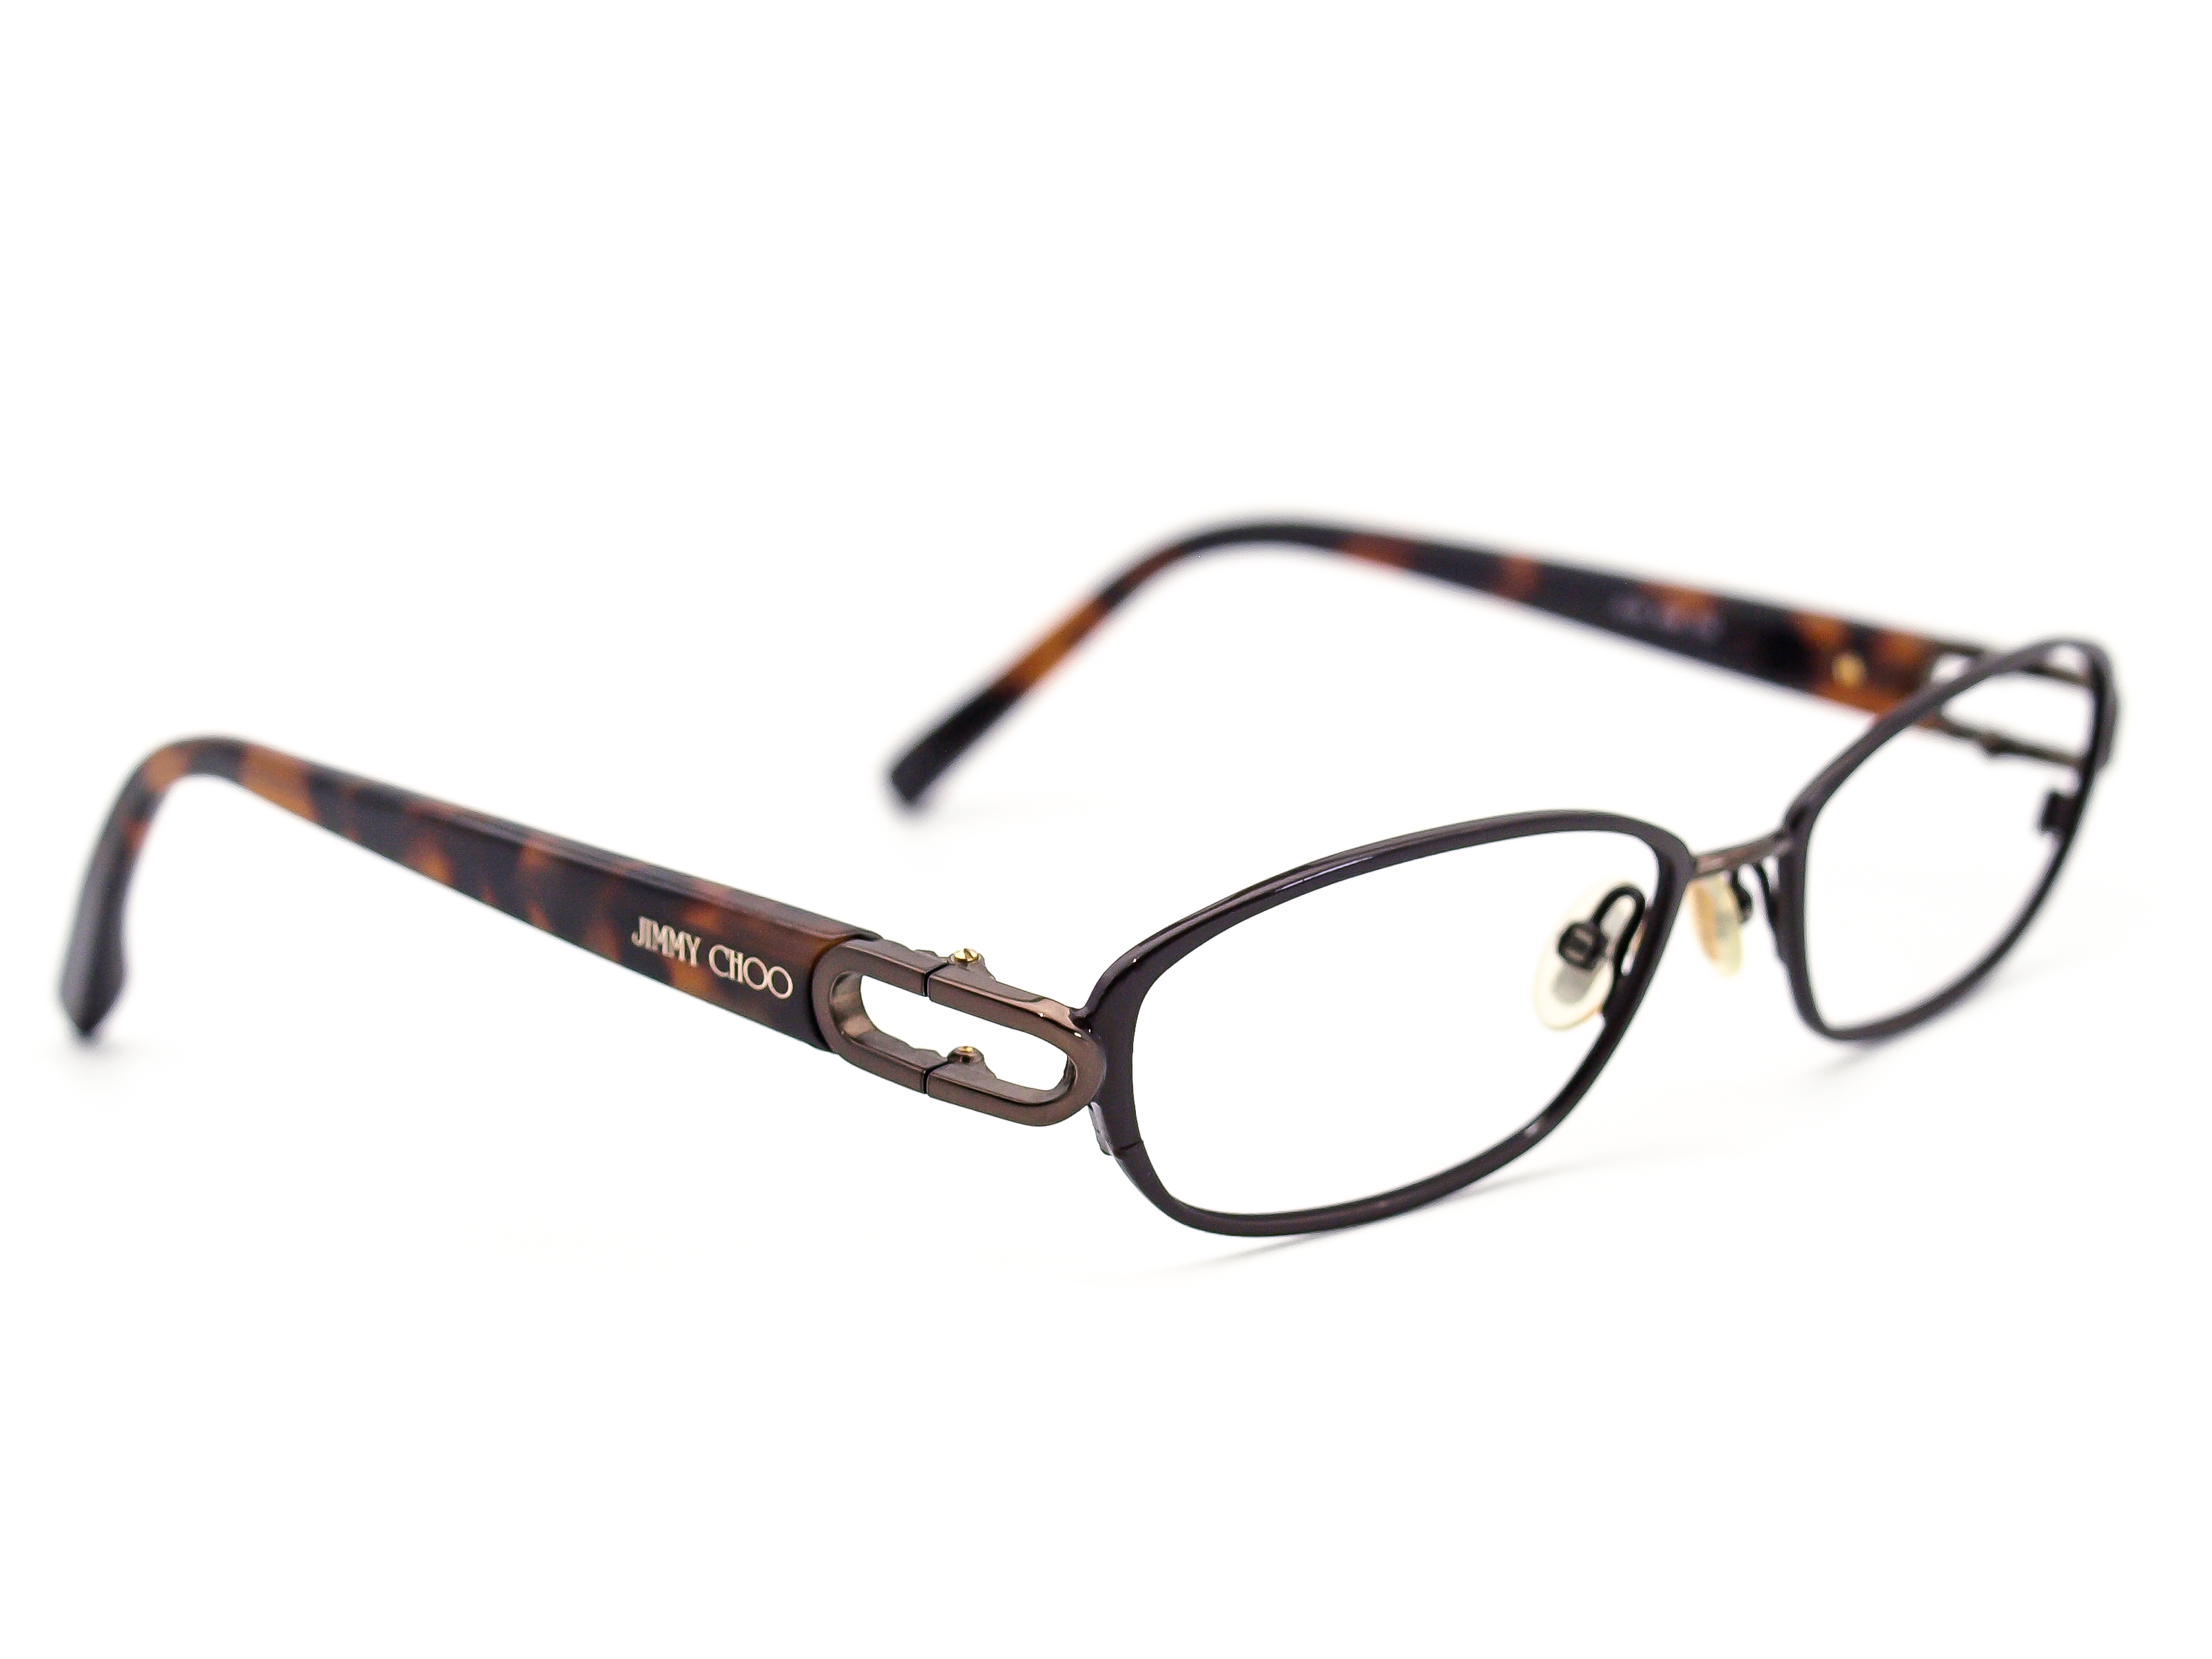 Jimmy Choo JC40 AXN Eyeglasses